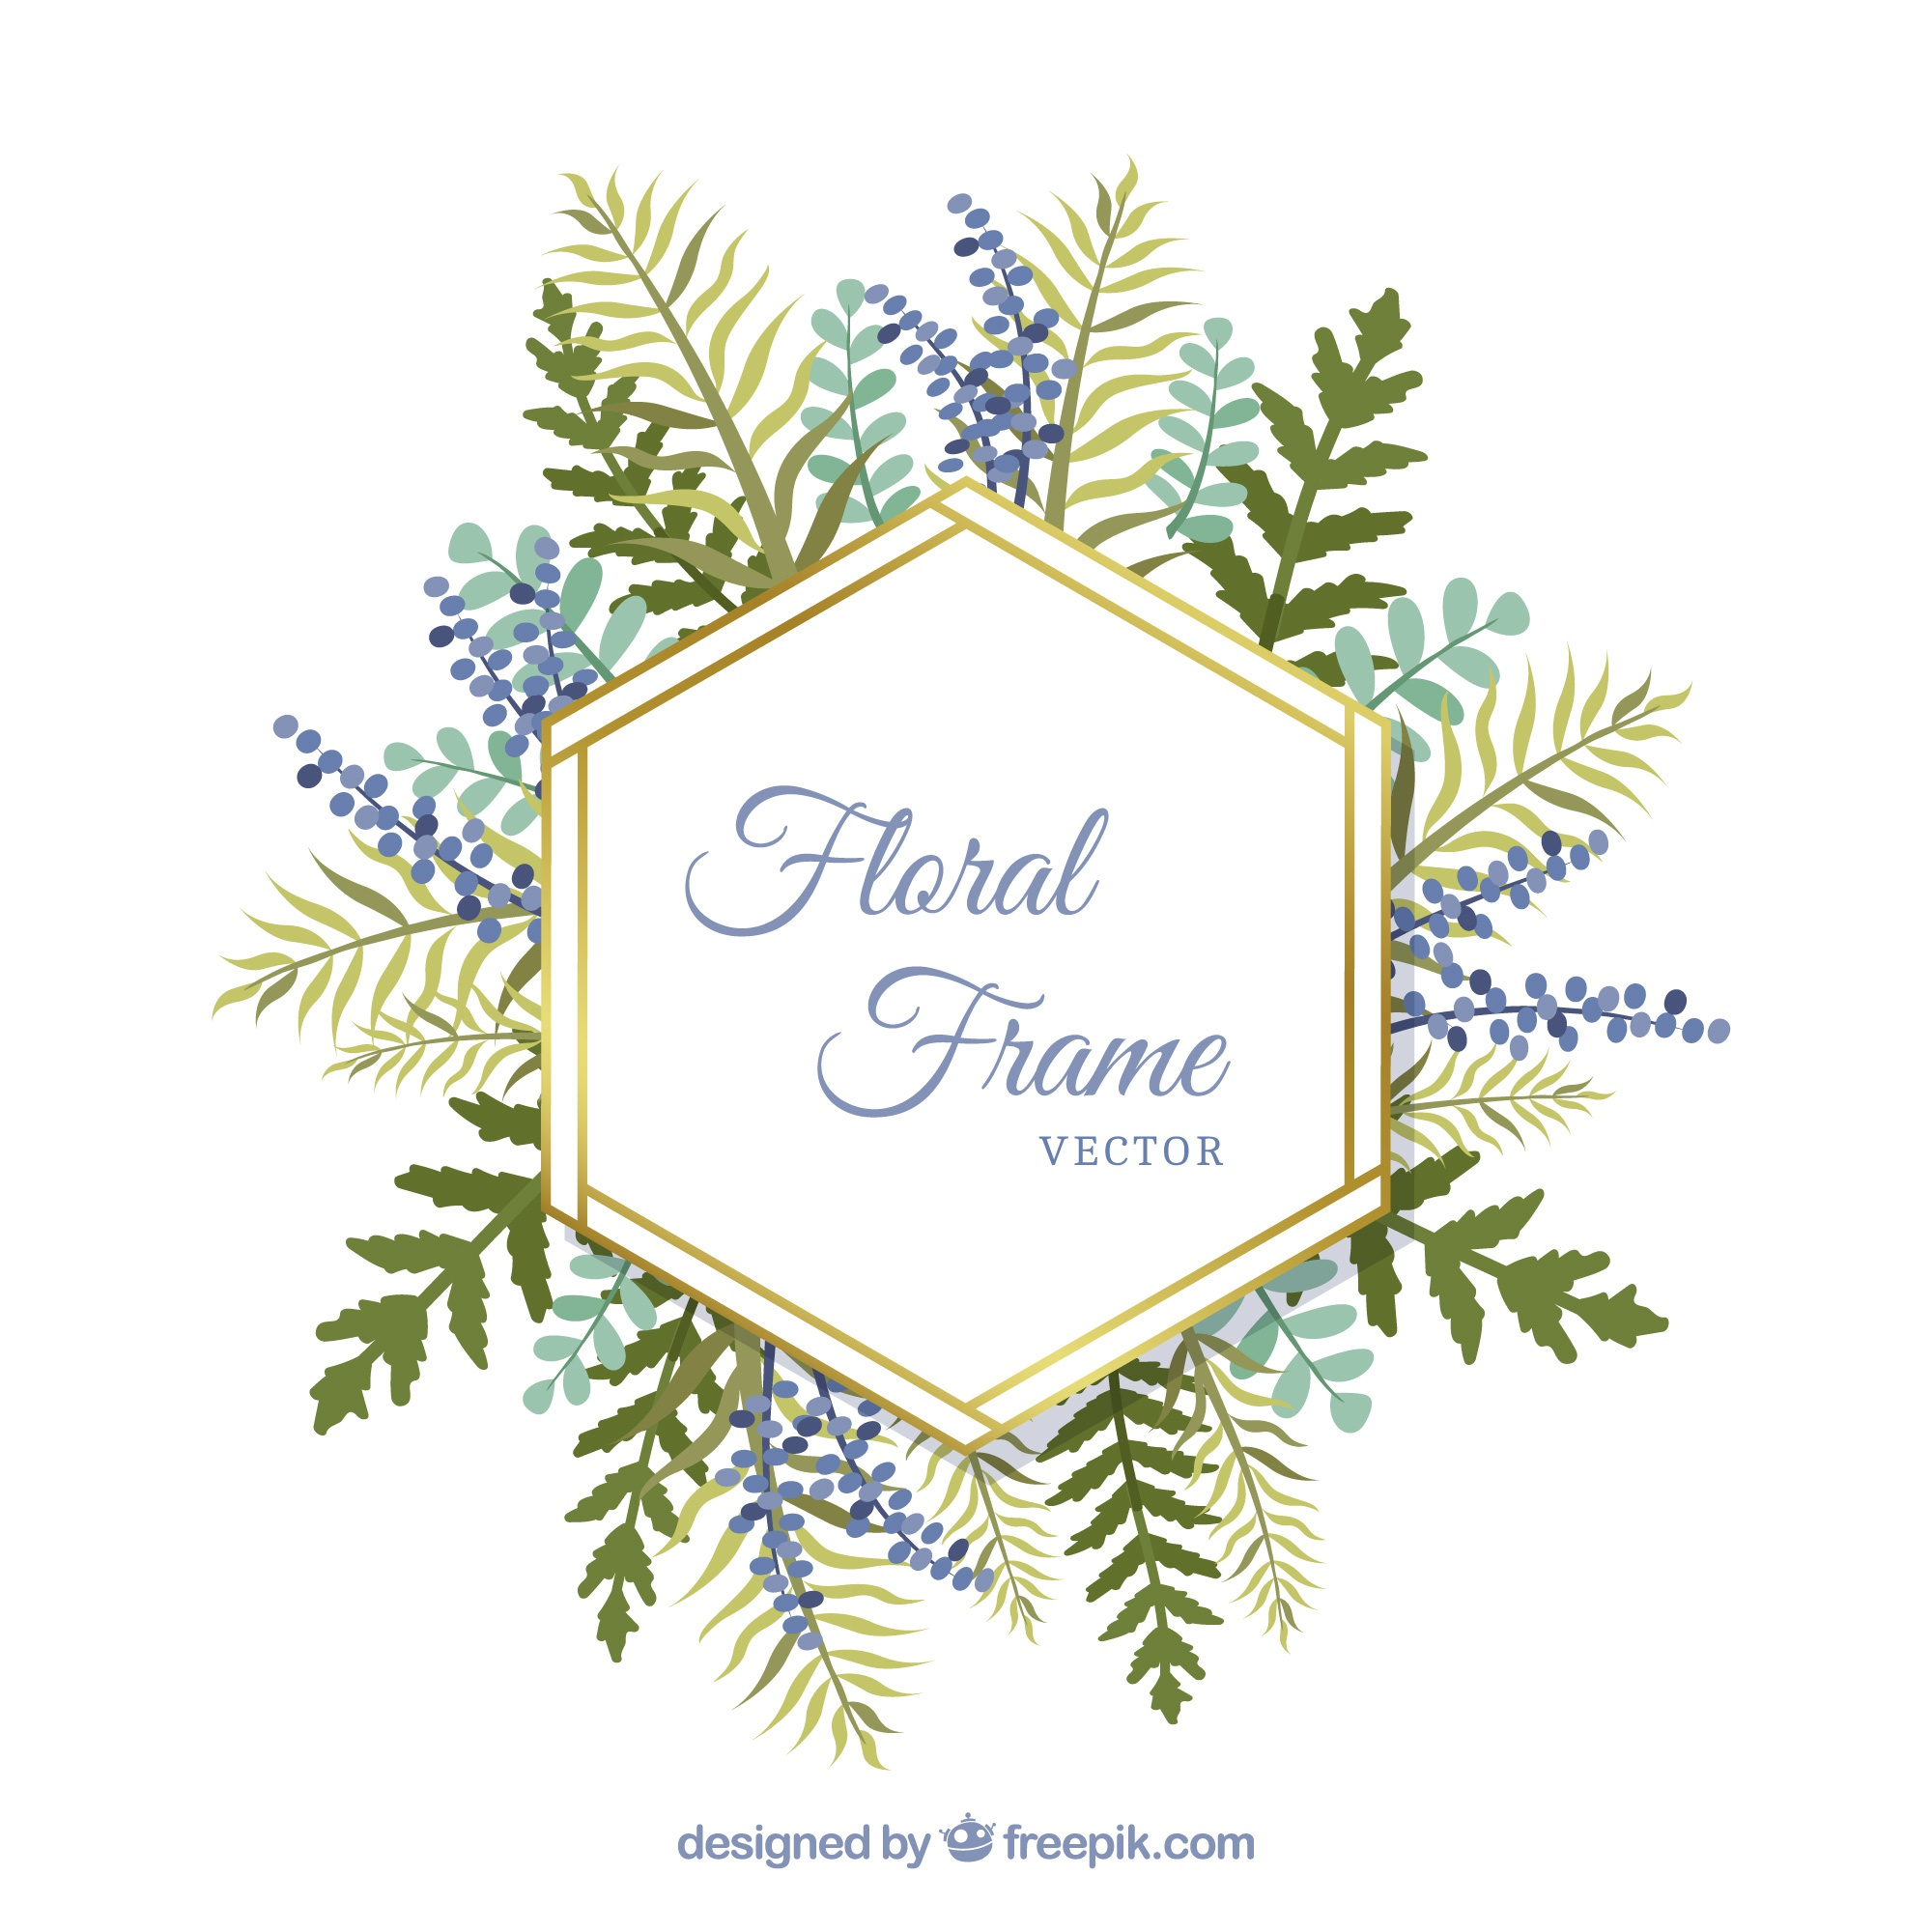 Floral frame with differents leaves